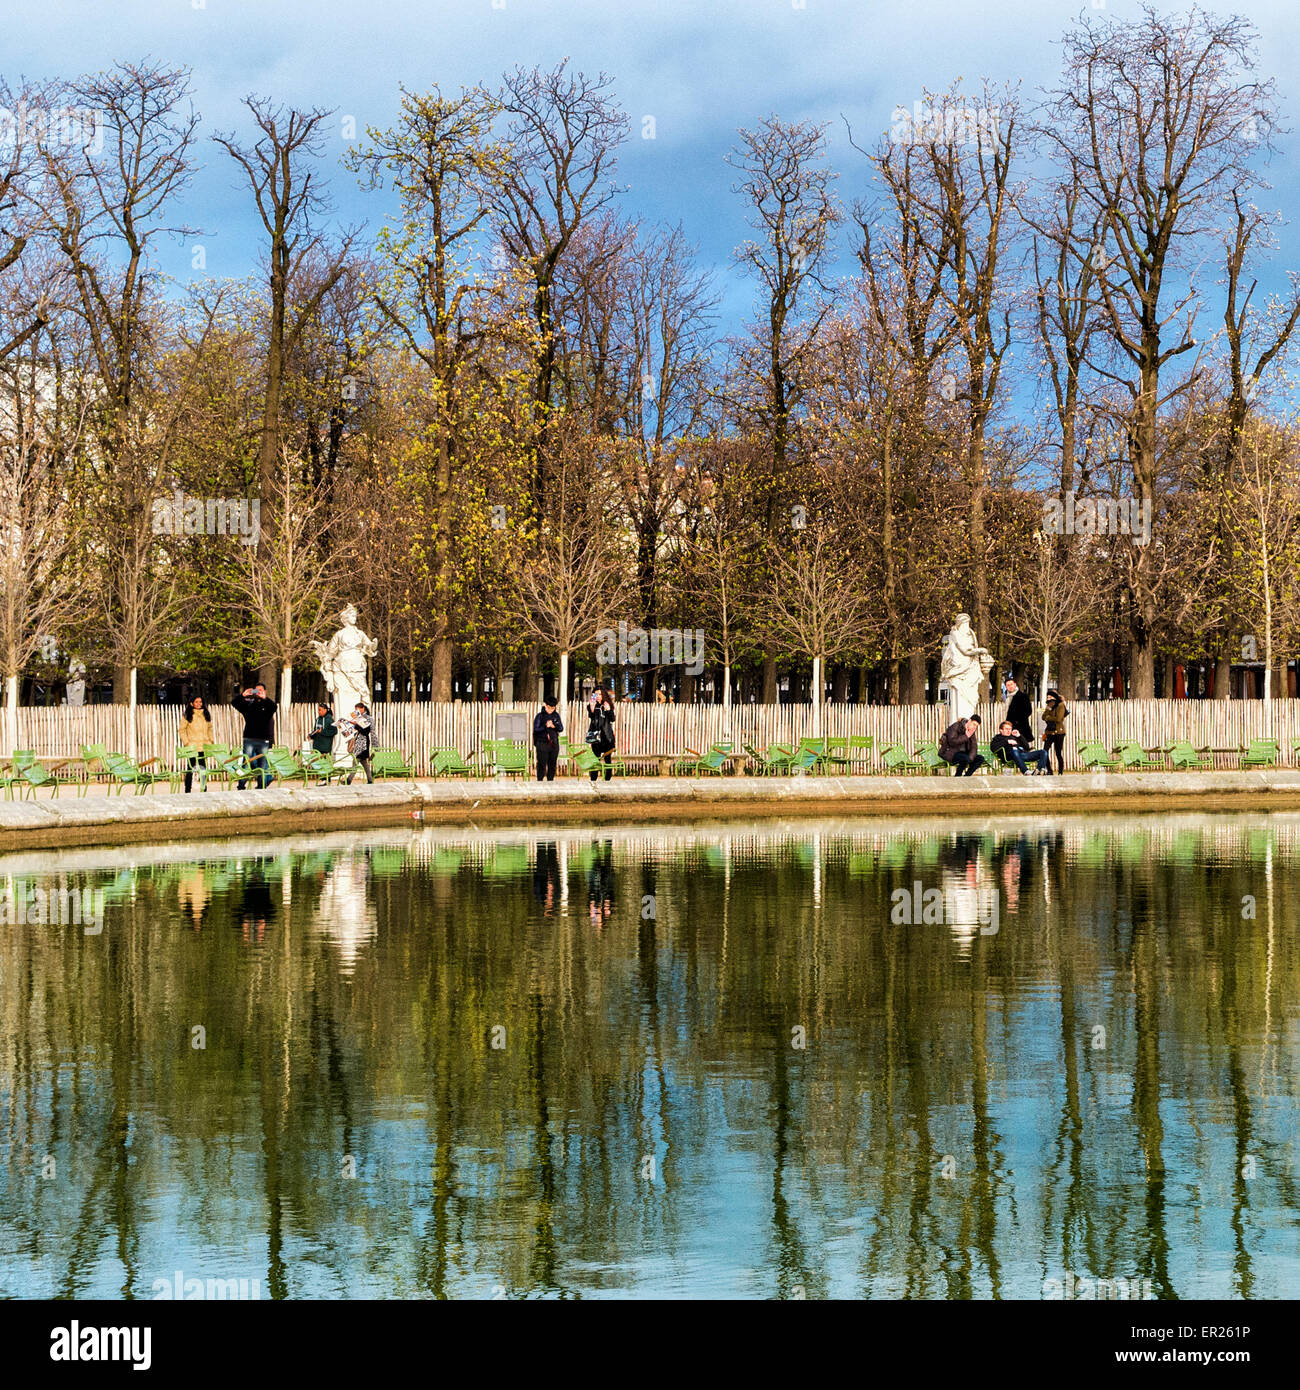 Paris, Tuilerires Garden - Bassin Octogonal pond, sculptures, people and reflections - Stock Image